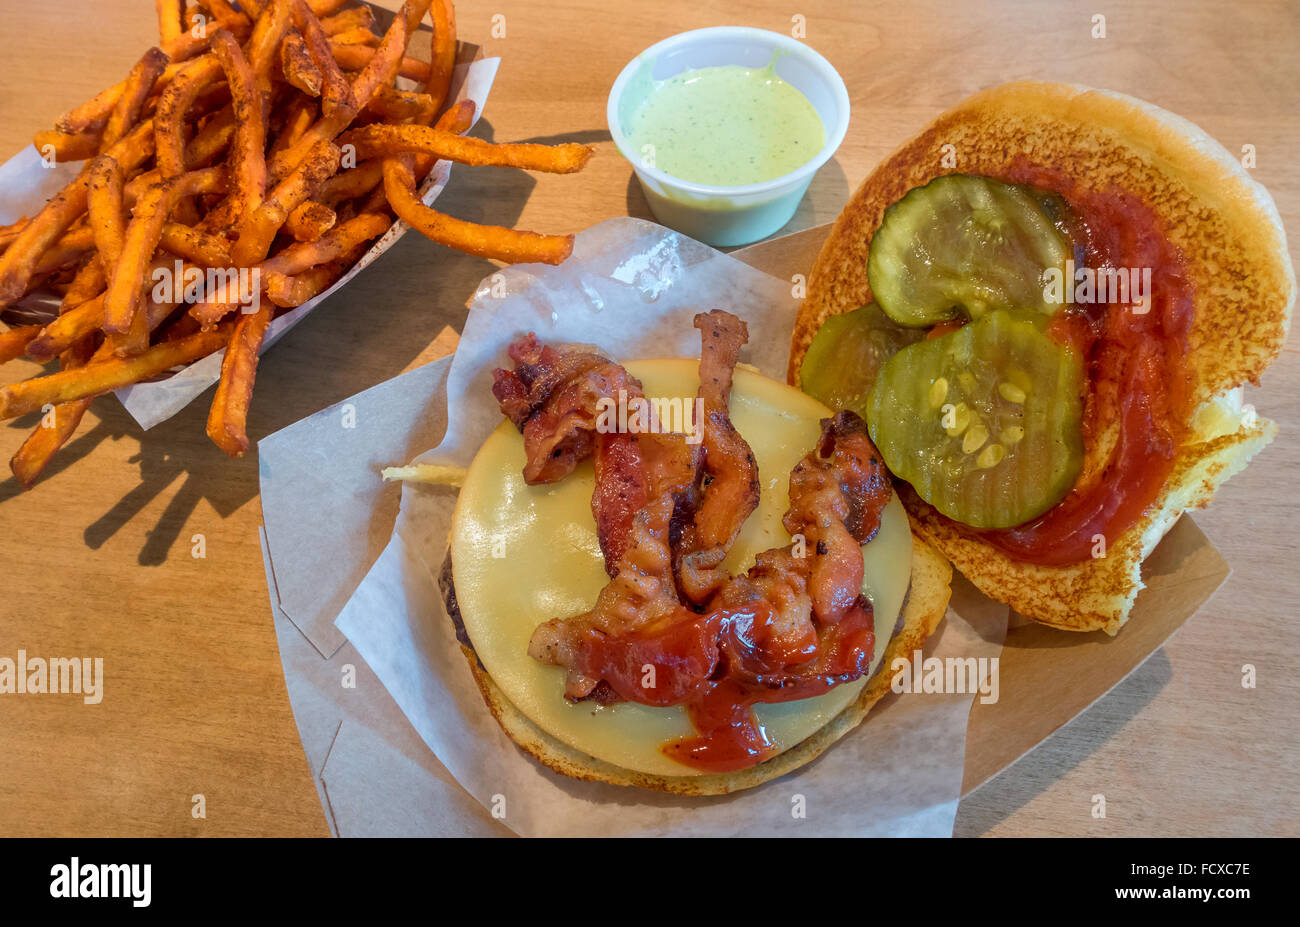 A bacon cheeseburger with ketchup and pickles and sweet potato fries - Stock Image